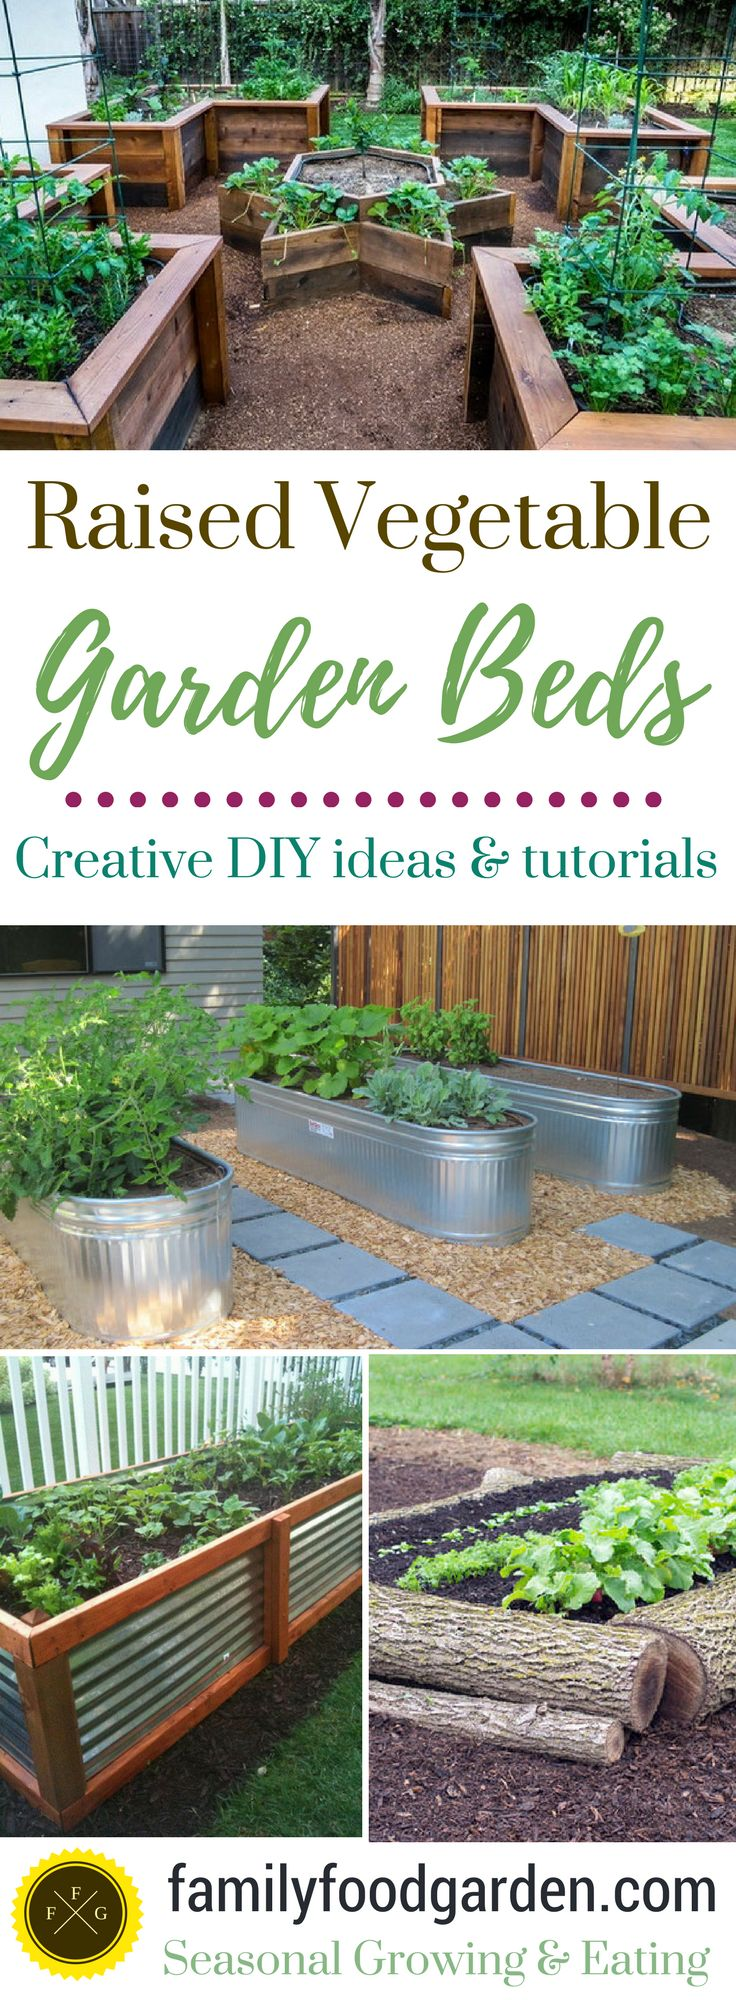 Questions about the recycled plastic raised garden bed 3 x 6 x 11 quot - Raised Vegetable Garden Beds Ideas